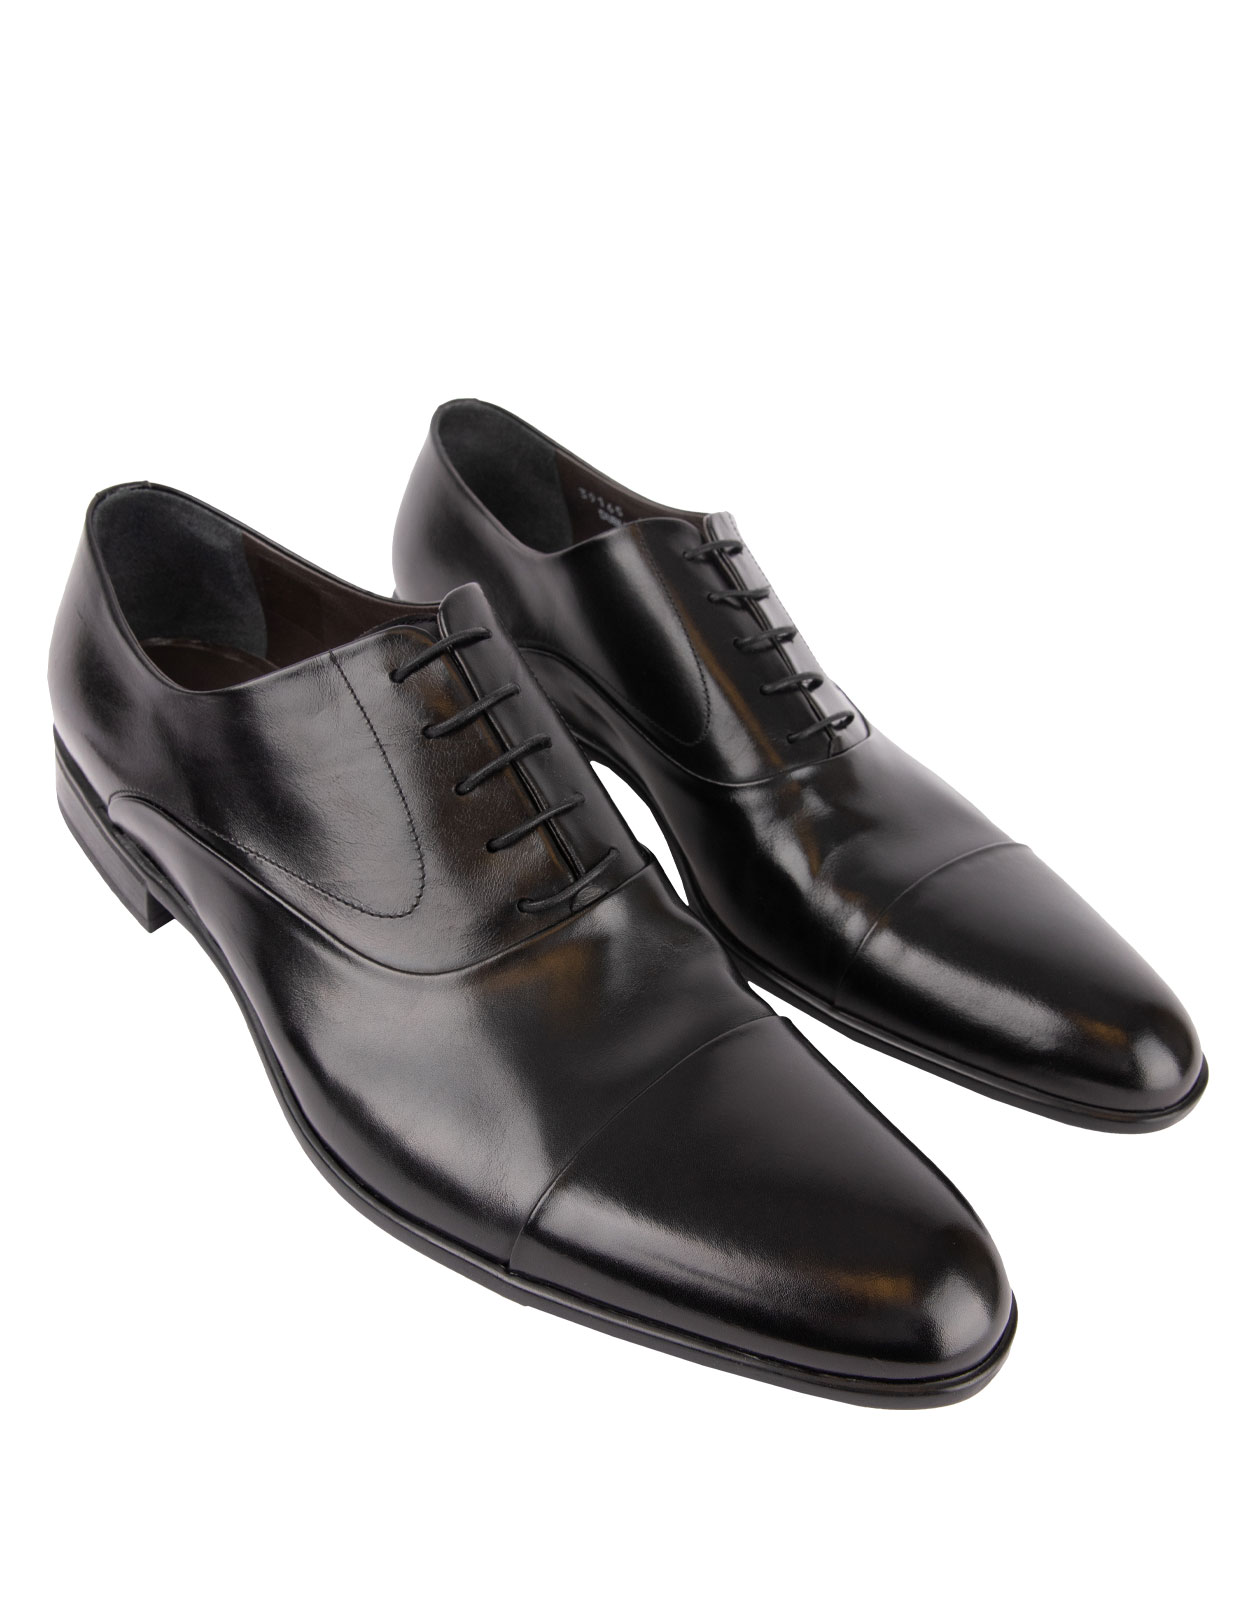 Dublin Oxford Shoe Calfskin With  Rubber Sole Black